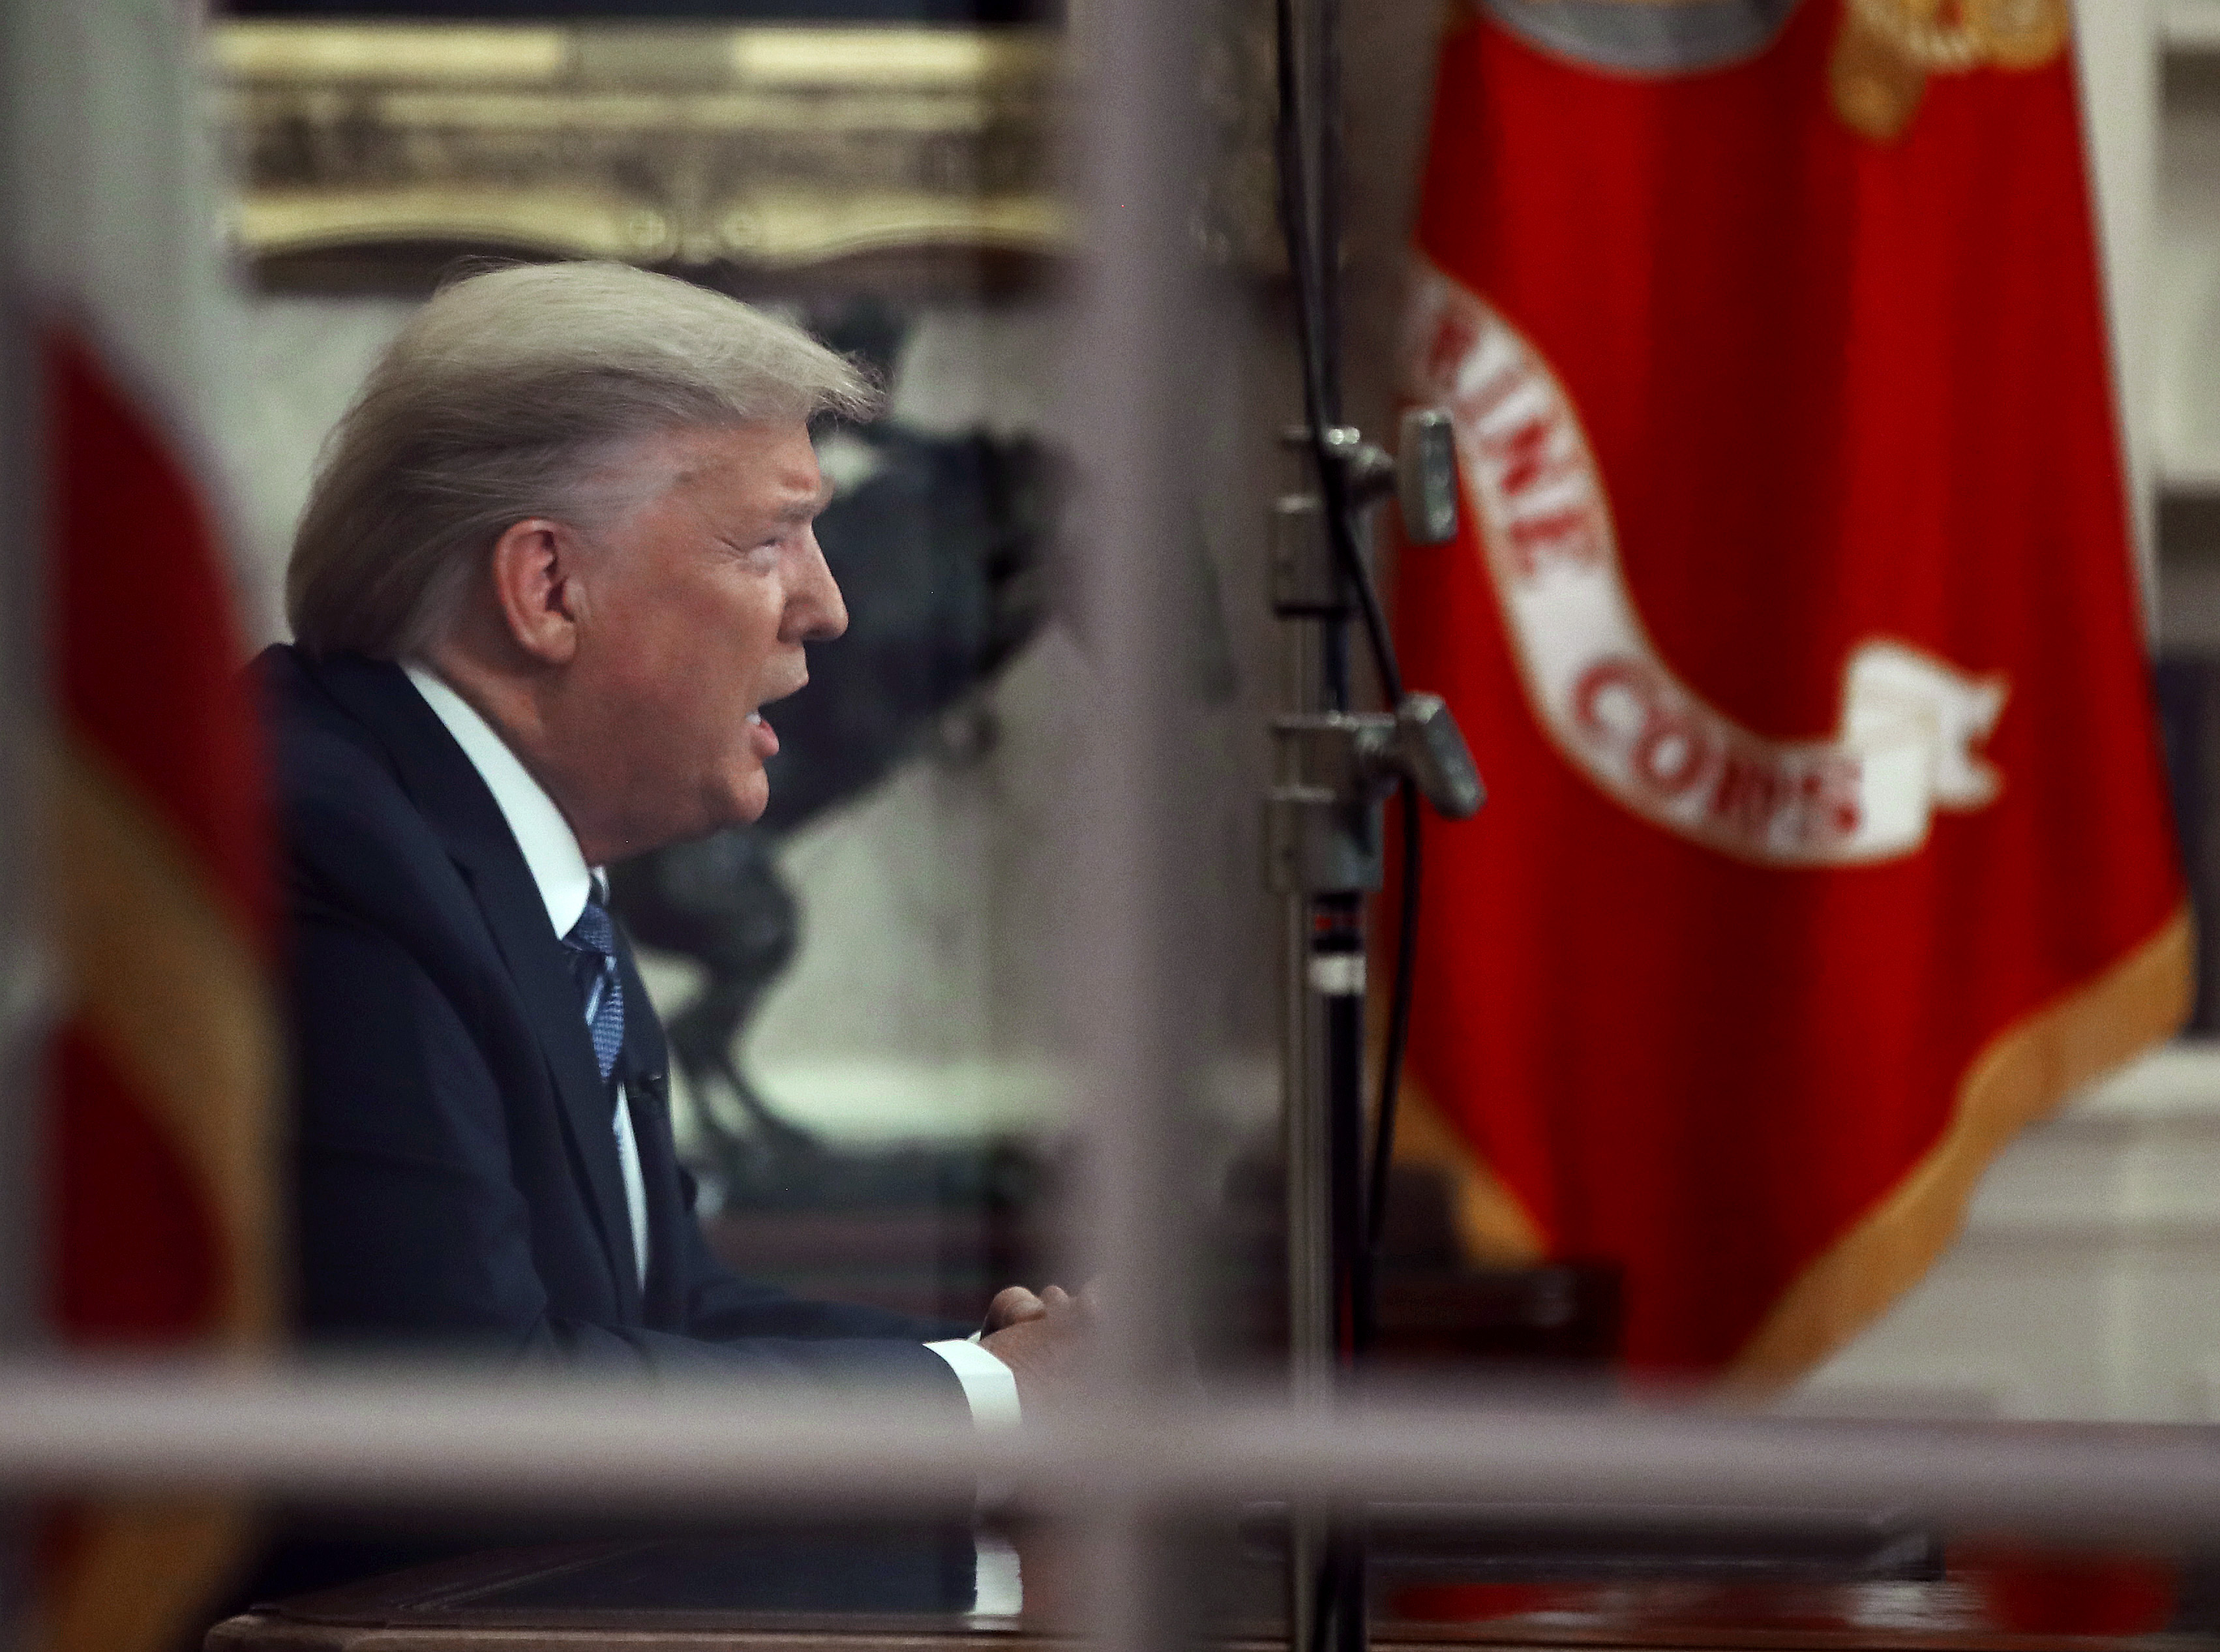 WASHINGTON, DC - MARCH 11: U.S. President Donald Trump is seen through a window in the Oval Office as he addresses the nation on the response to the COVID-19 coronavirus, on March 11, 2020 in Washington, DC. (Photo by Mark Wilson/Getty Images)